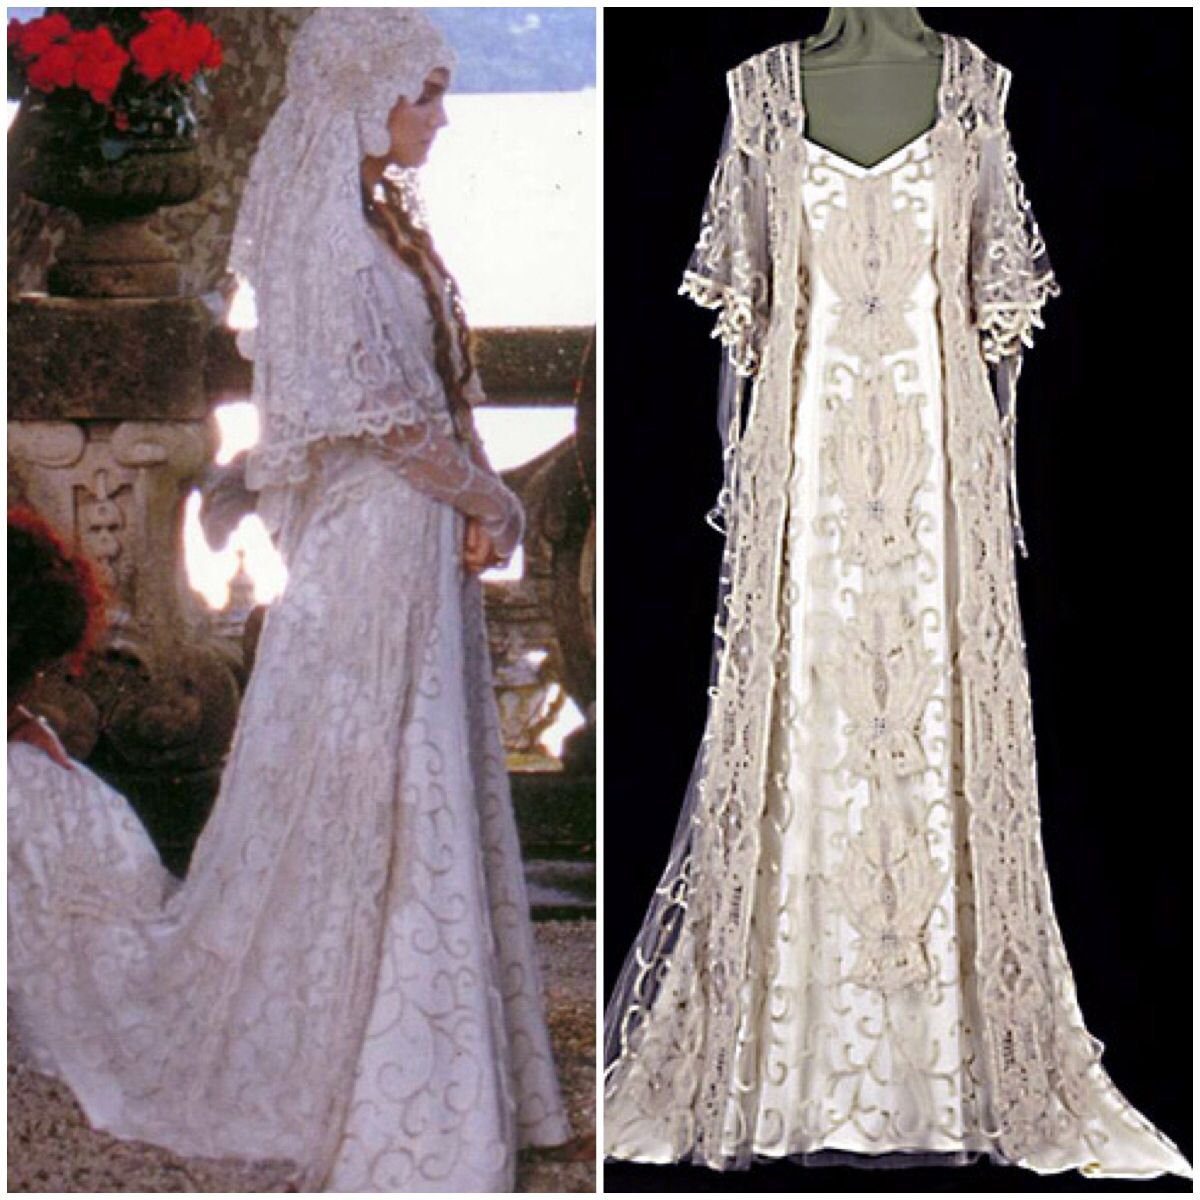 Padme S Wedding Dress I Would Love To Recreate This Dress If I